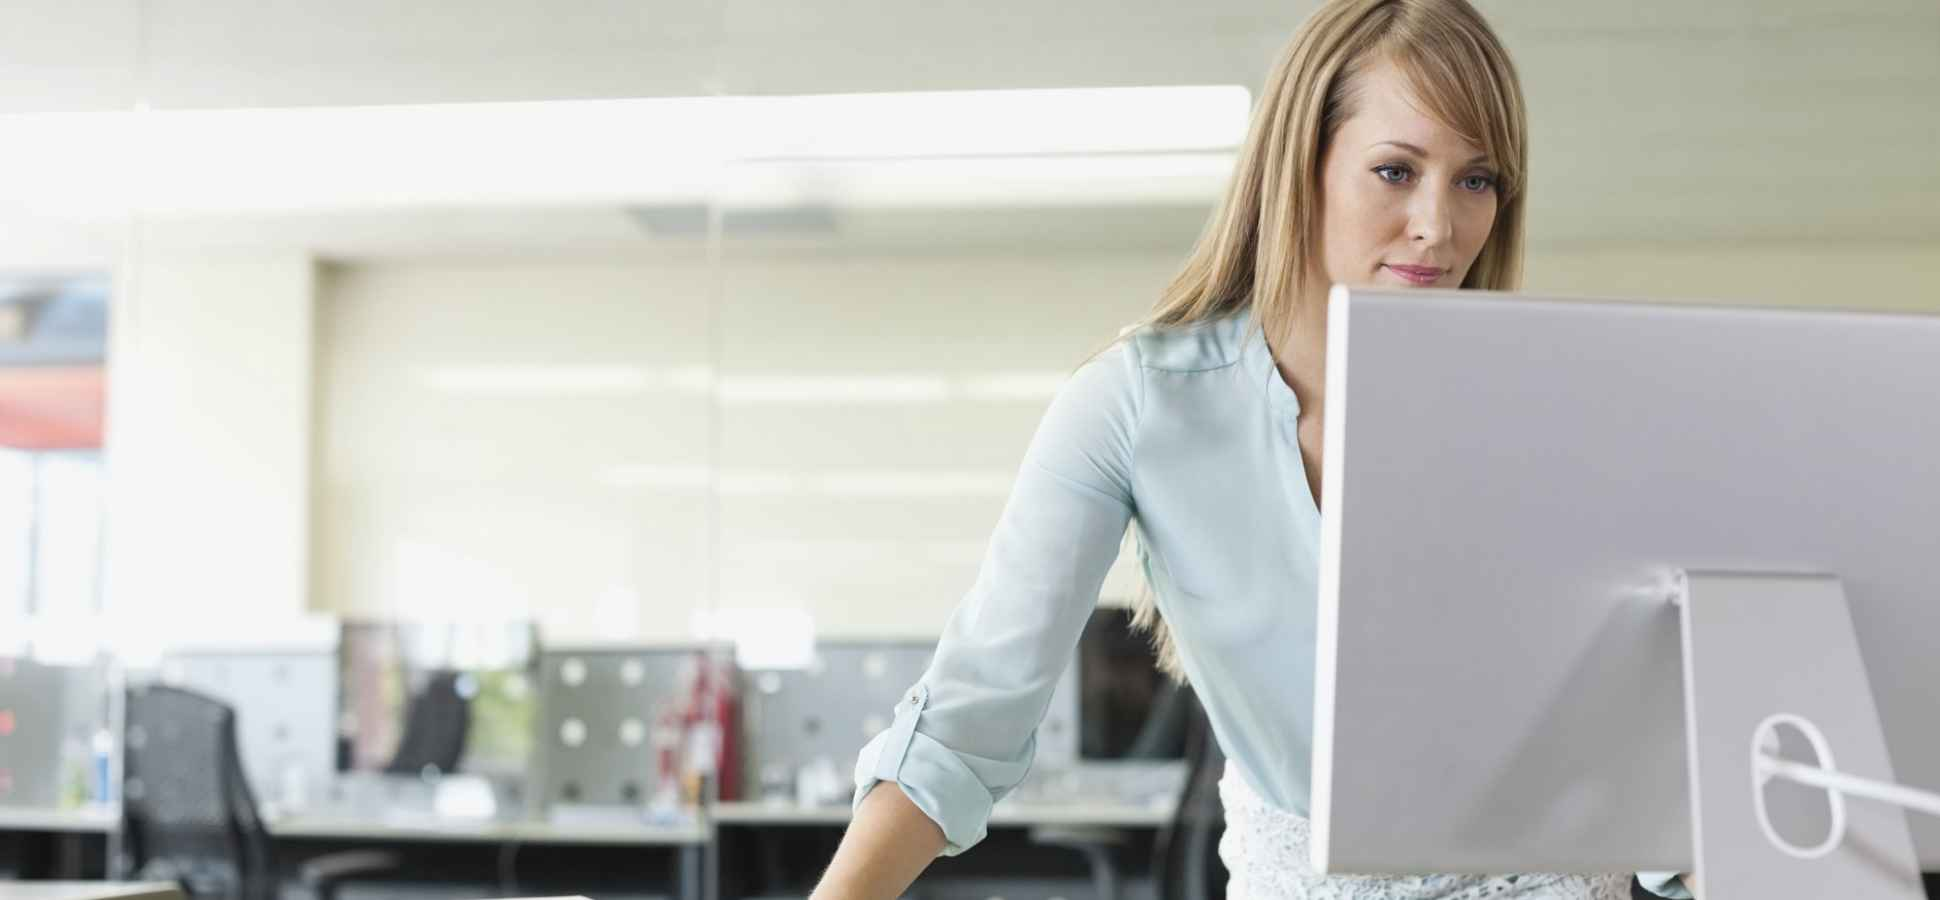 Your Productivity Will Increase by 46 percent if You Stand at Your Desk, Says Study